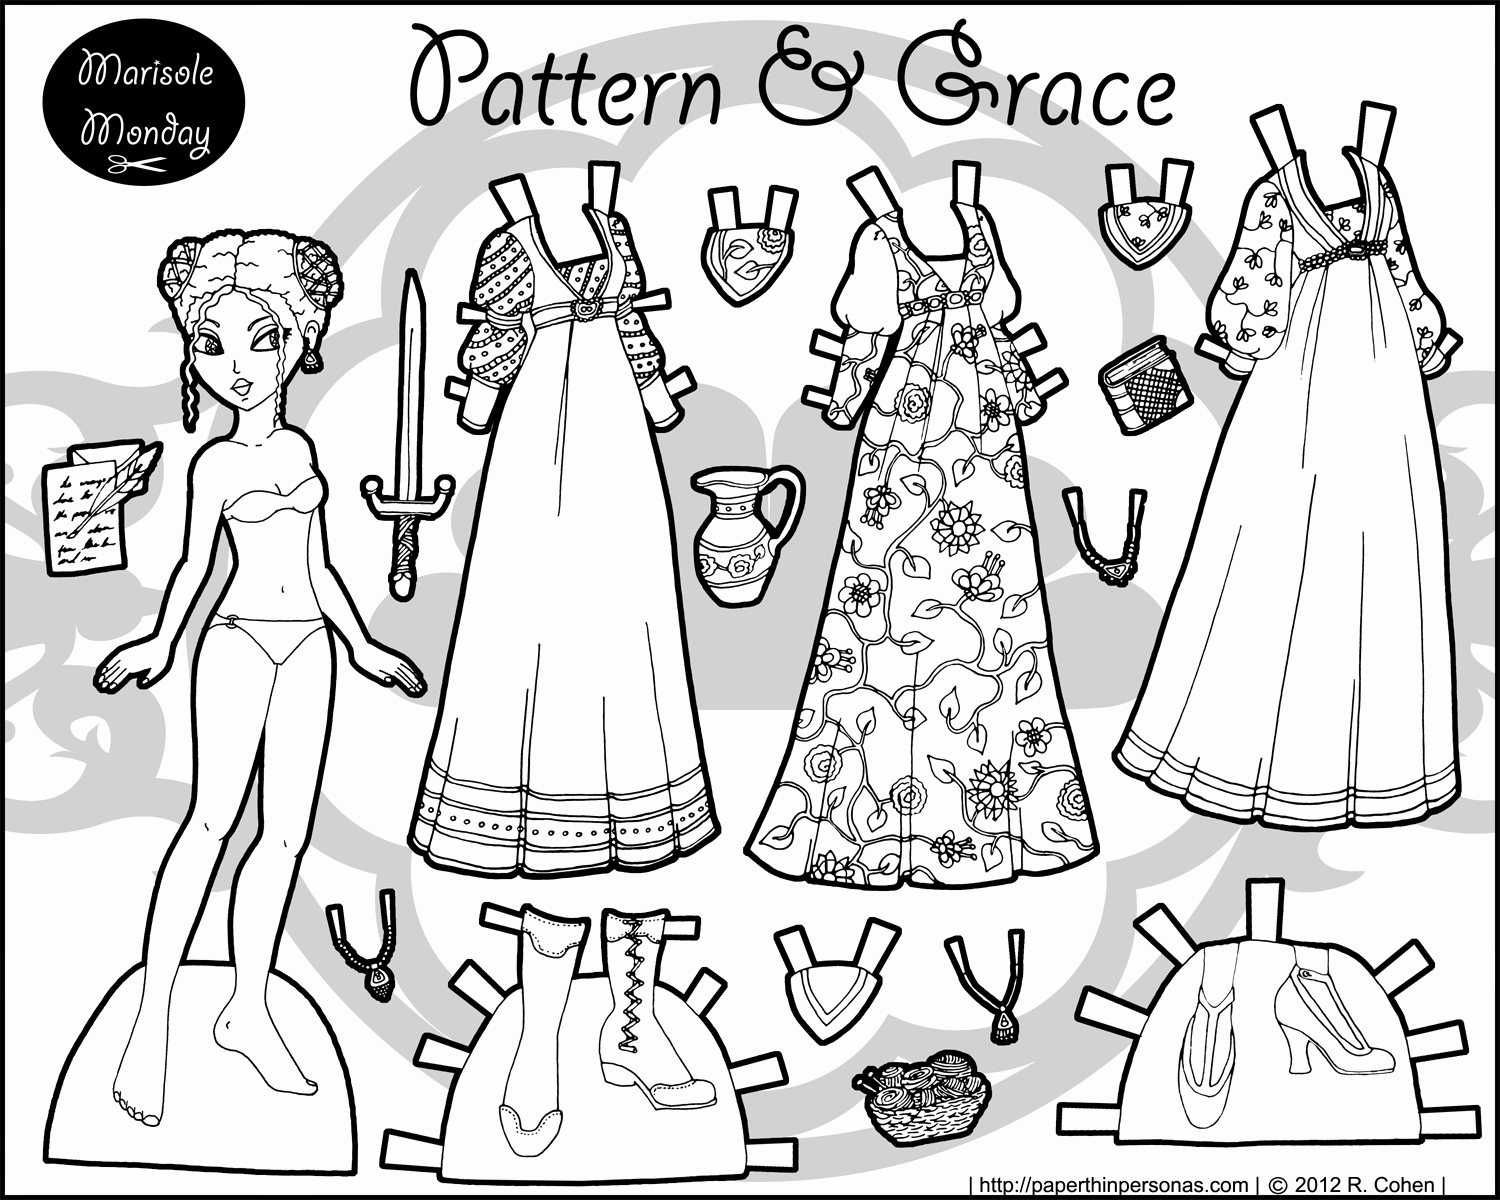 american girl coloring pages grace american girl coloring pages grace at getcoloringscom pages american girl grace coloring